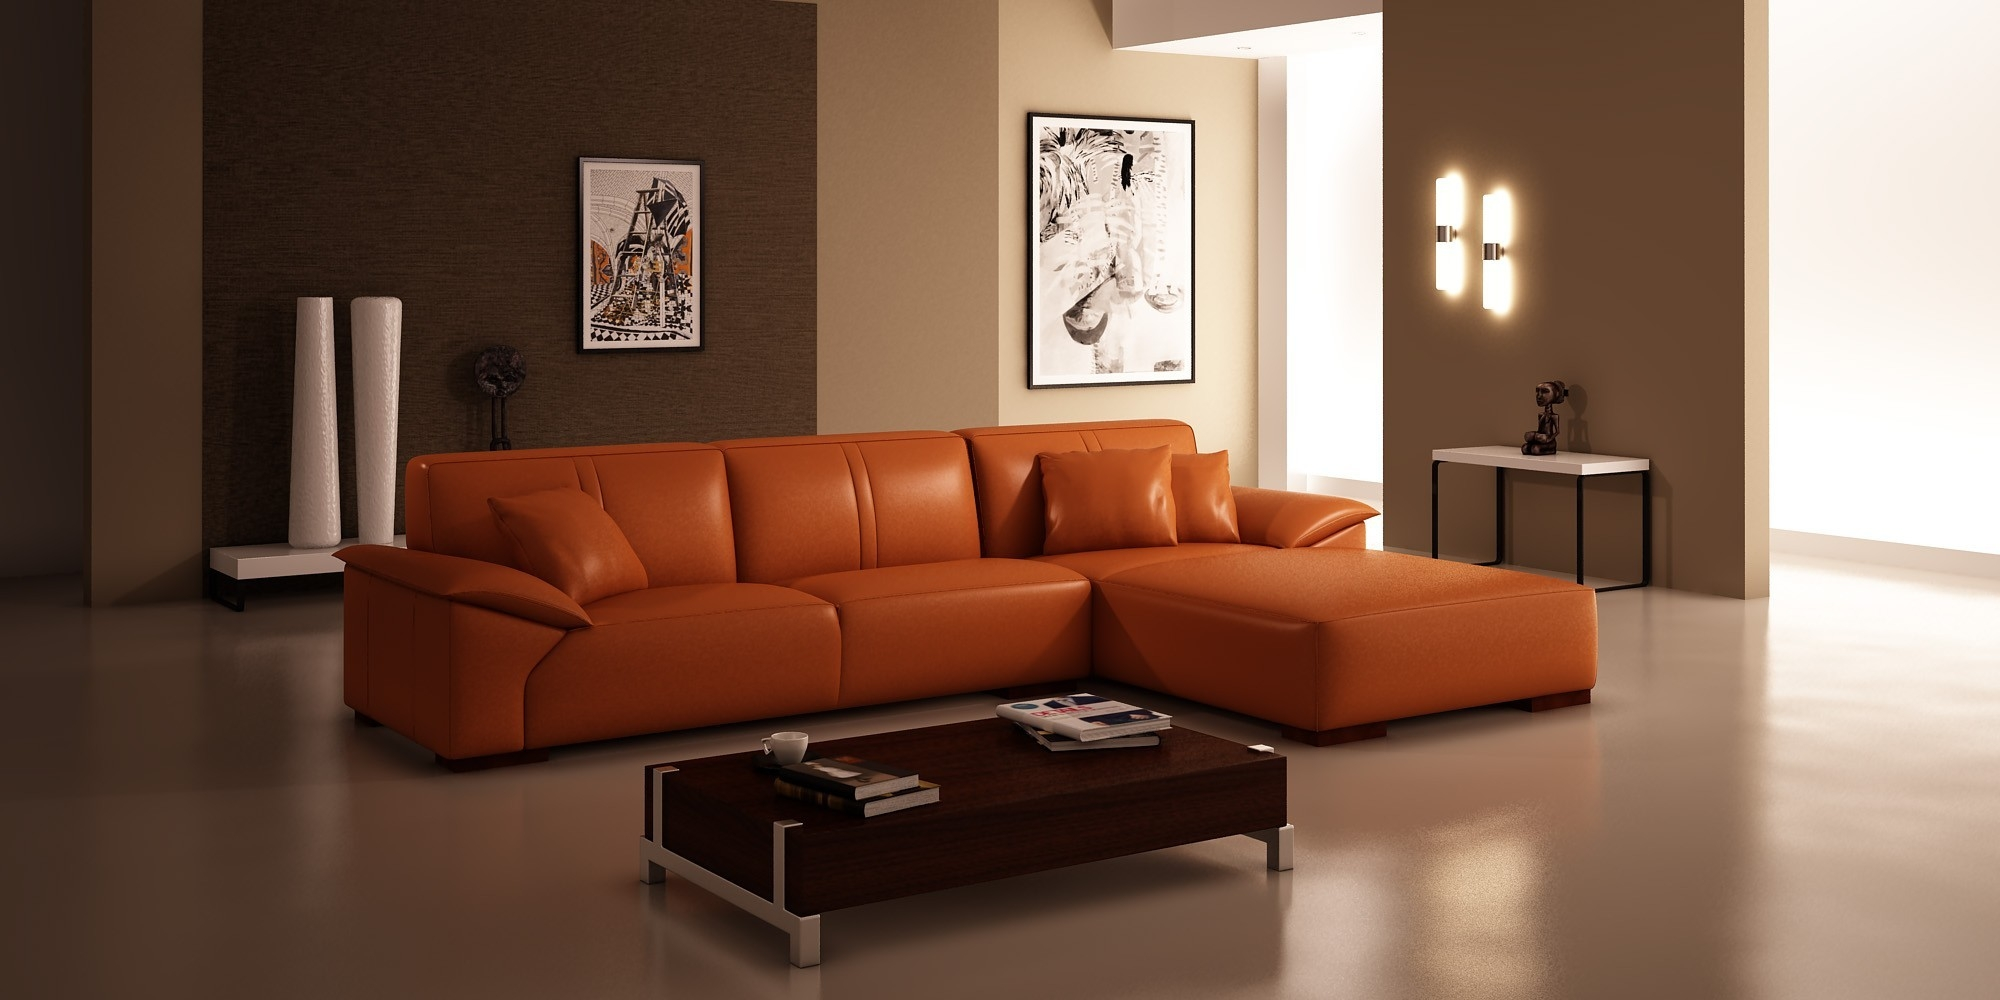 Orange And Brown Sofa Sets Hereo Sofa With Orange Sofa Chairs (Image 7 of 15)